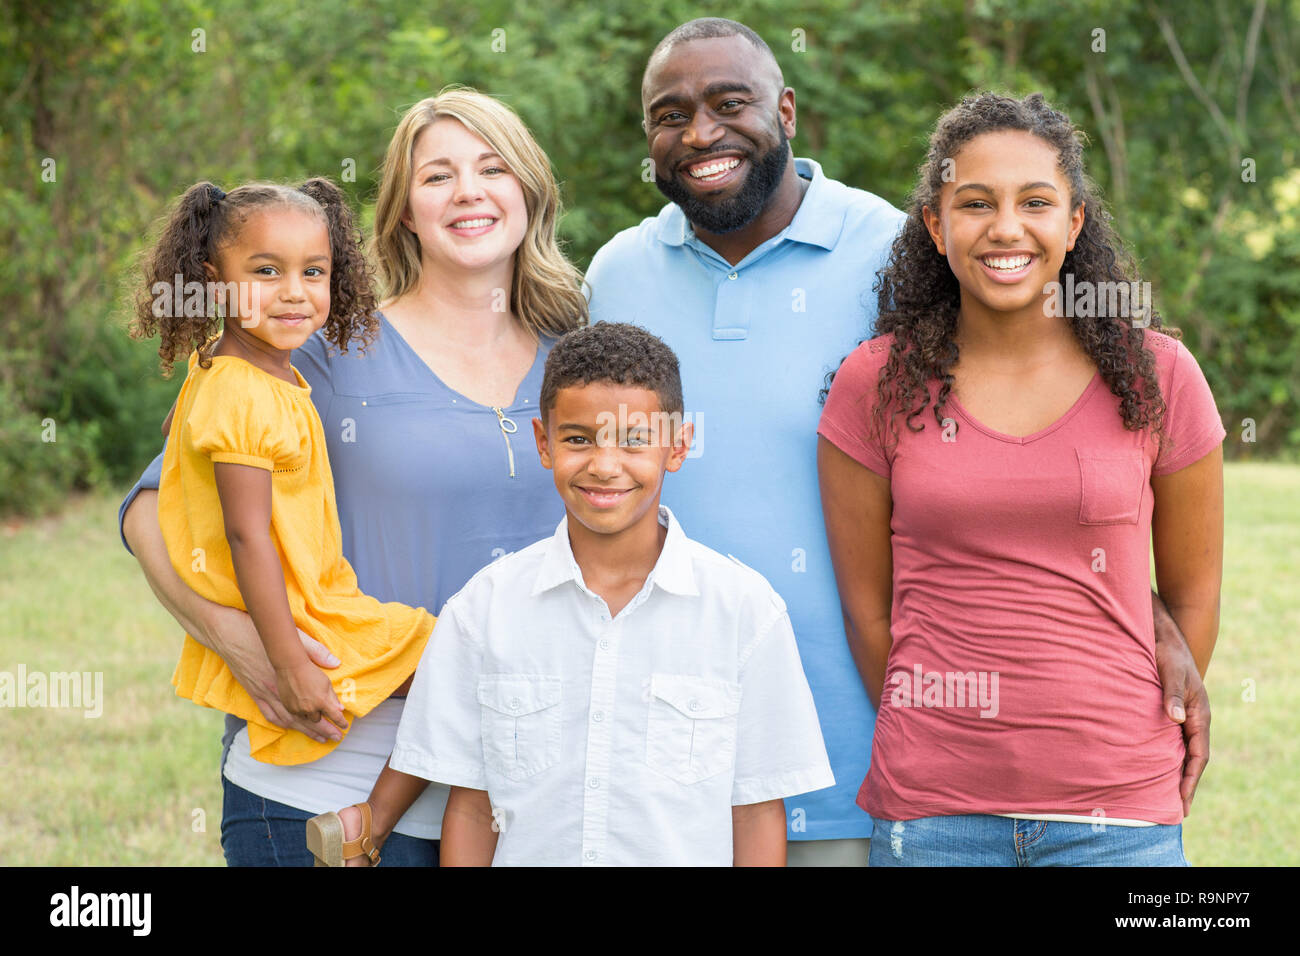 Portarit of a happy mixed race family smiling - Stock Image